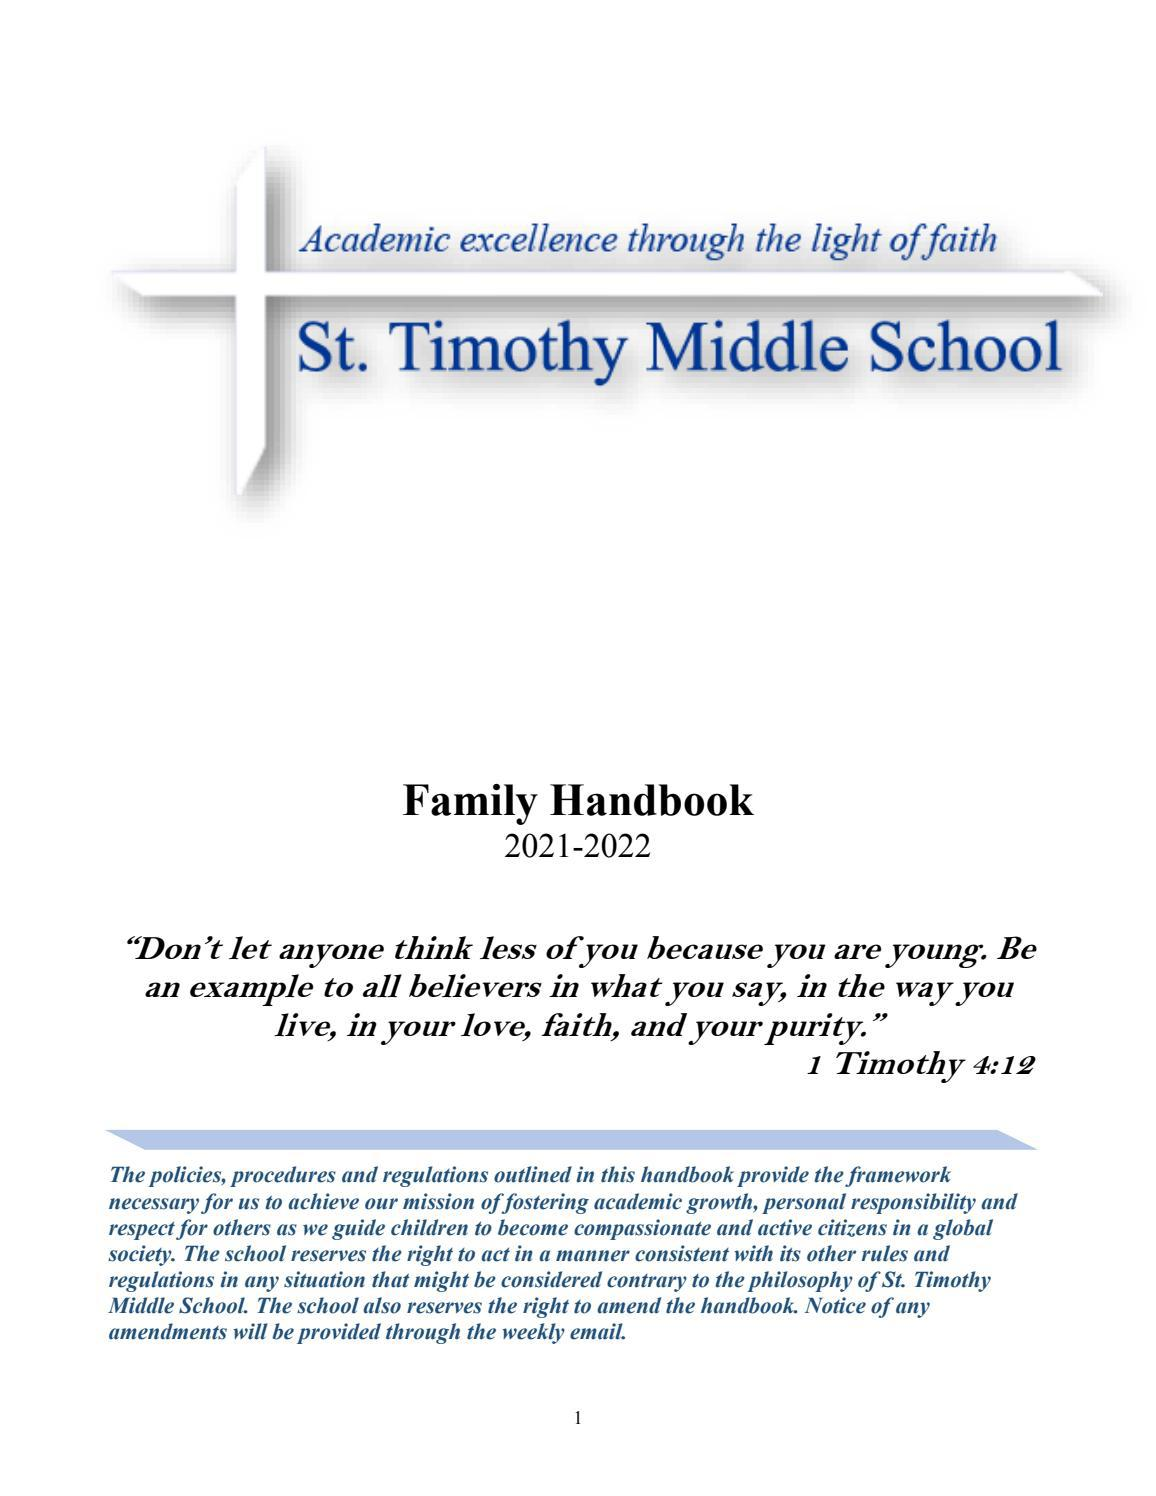 St. Timothy Middle School Family Handbook, 2021-22 by Saint ...